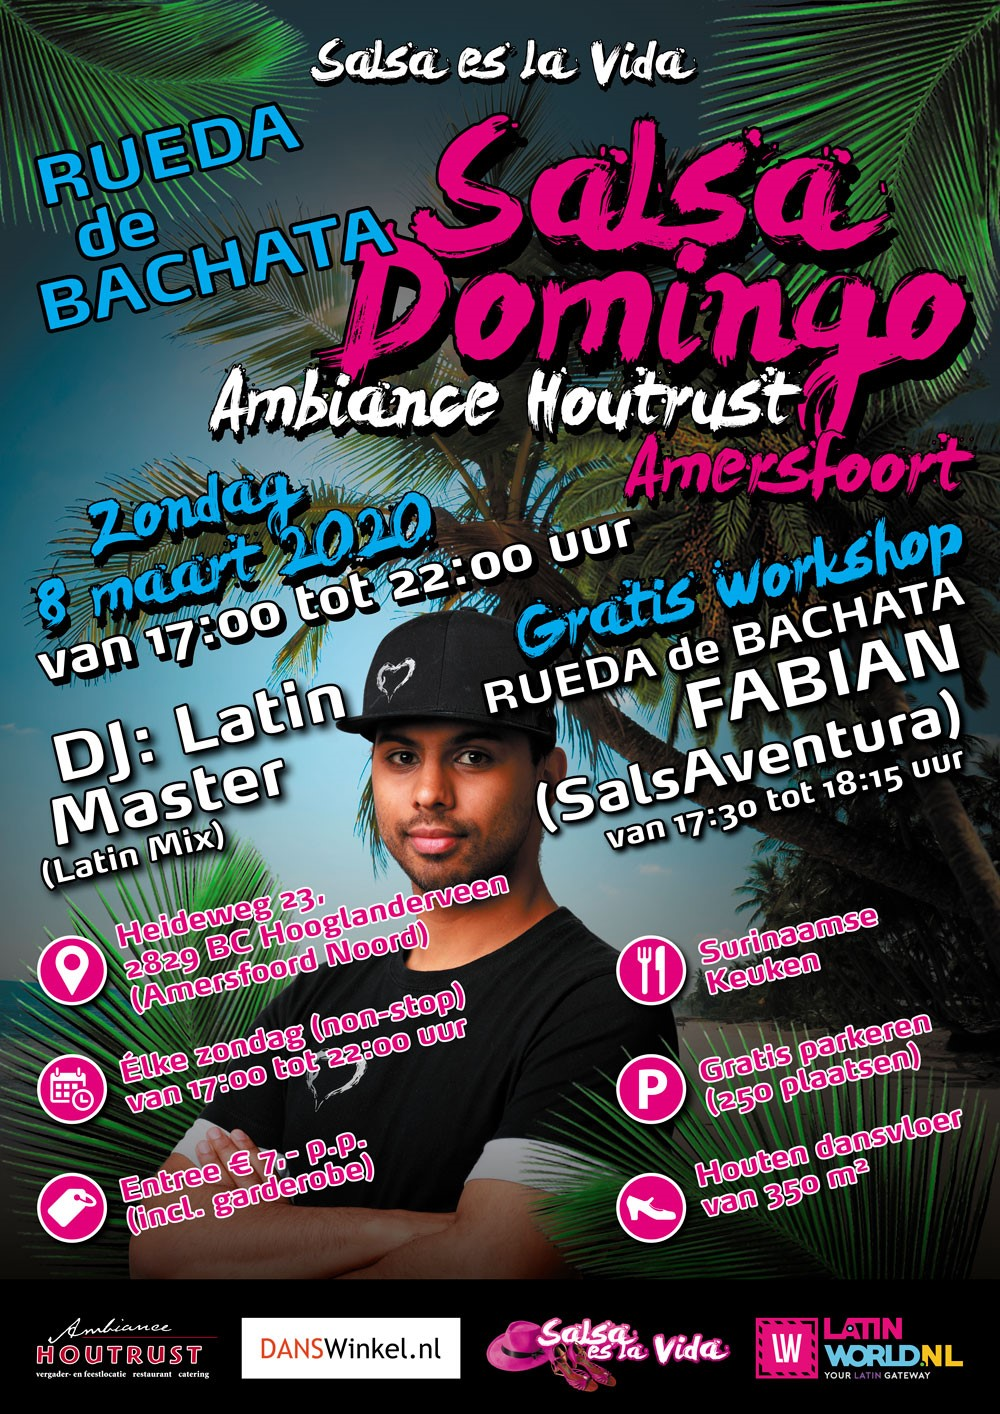 Workshop Bachata 27 1 19